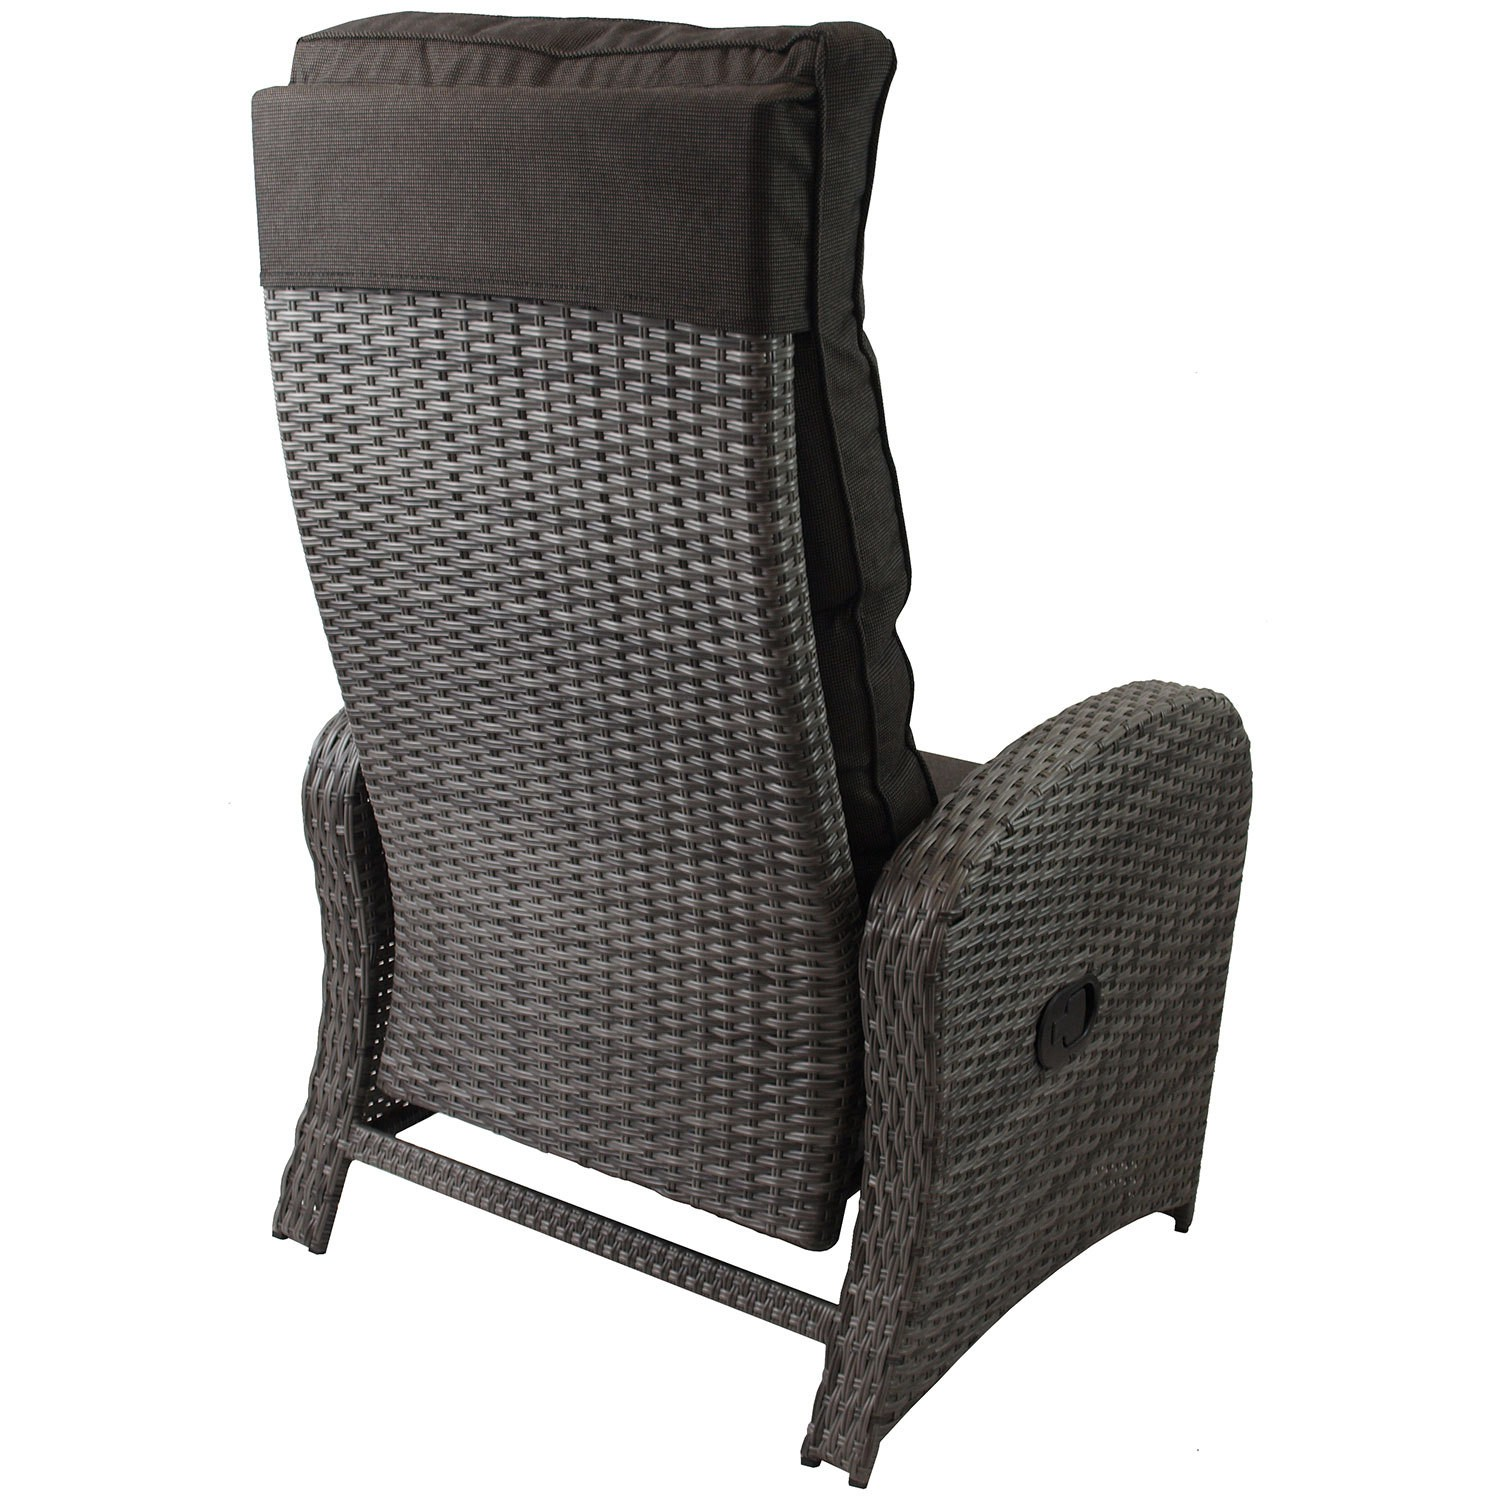 2X LOUNGE POLY RATTAN SESSEL GARTENSESSEL RELAXSESSEL GRAU + AUFLAGE ...